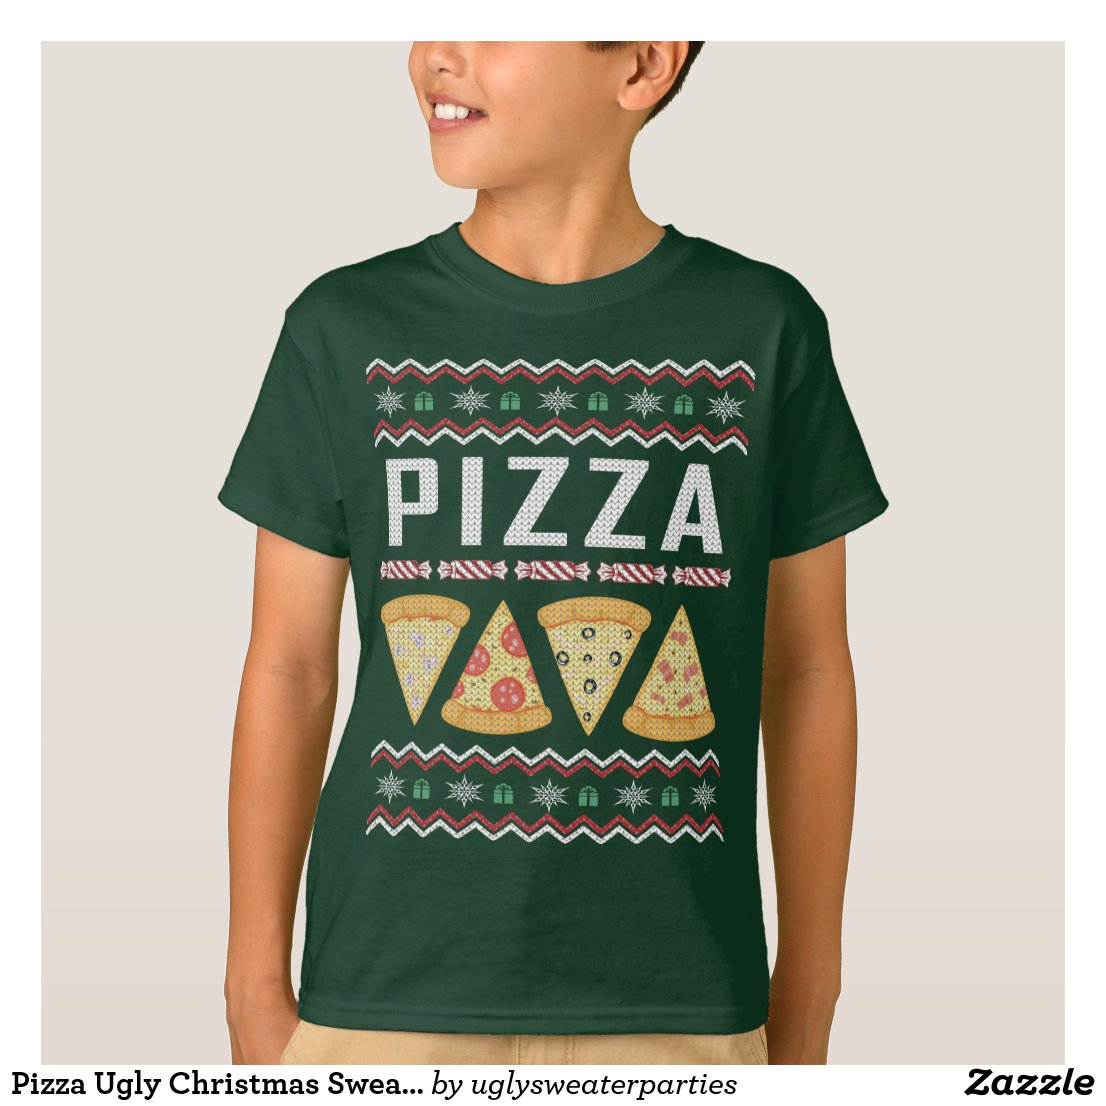 Fun Pizza Ugly Christmas Sweaters